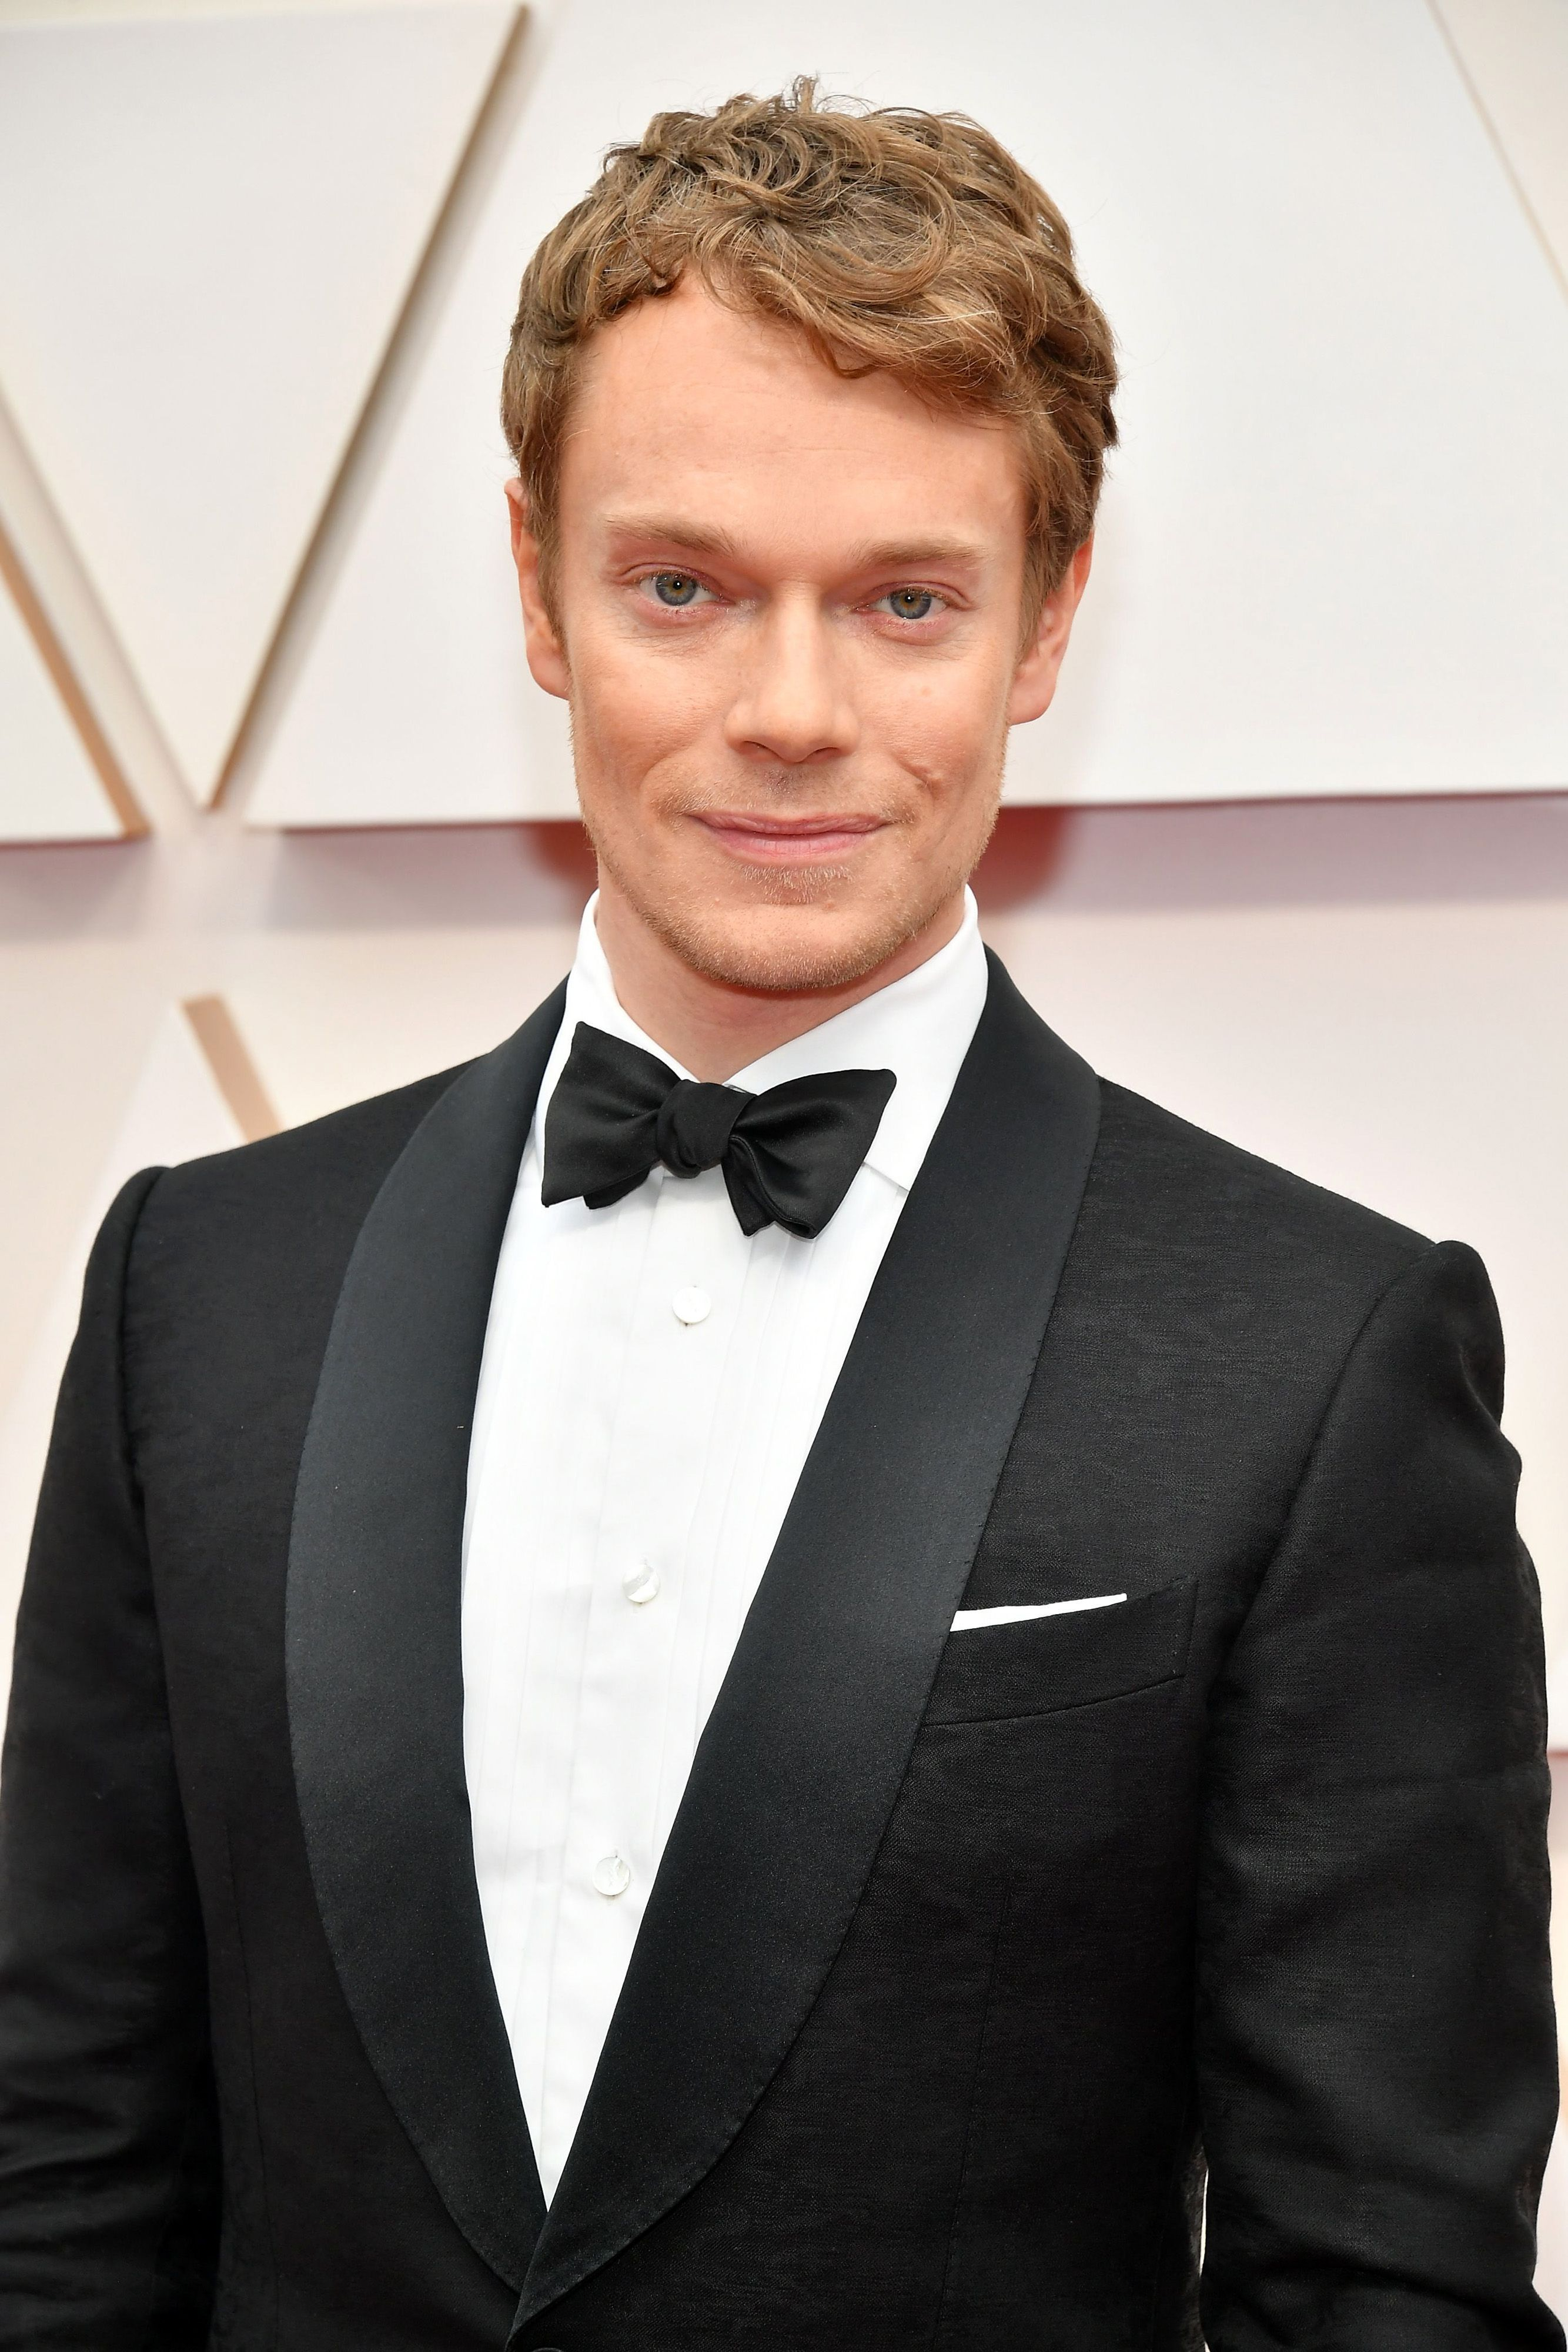 HOLLYWOOD, CALIFORNIA - FEBRUARY 09: Alfie Allen attends the 92nd Annual Academy Awards at Hollywood and Highland on February 09, 2020 in Hollywood, California. (Photo by Amy Sussman/Getty Images)